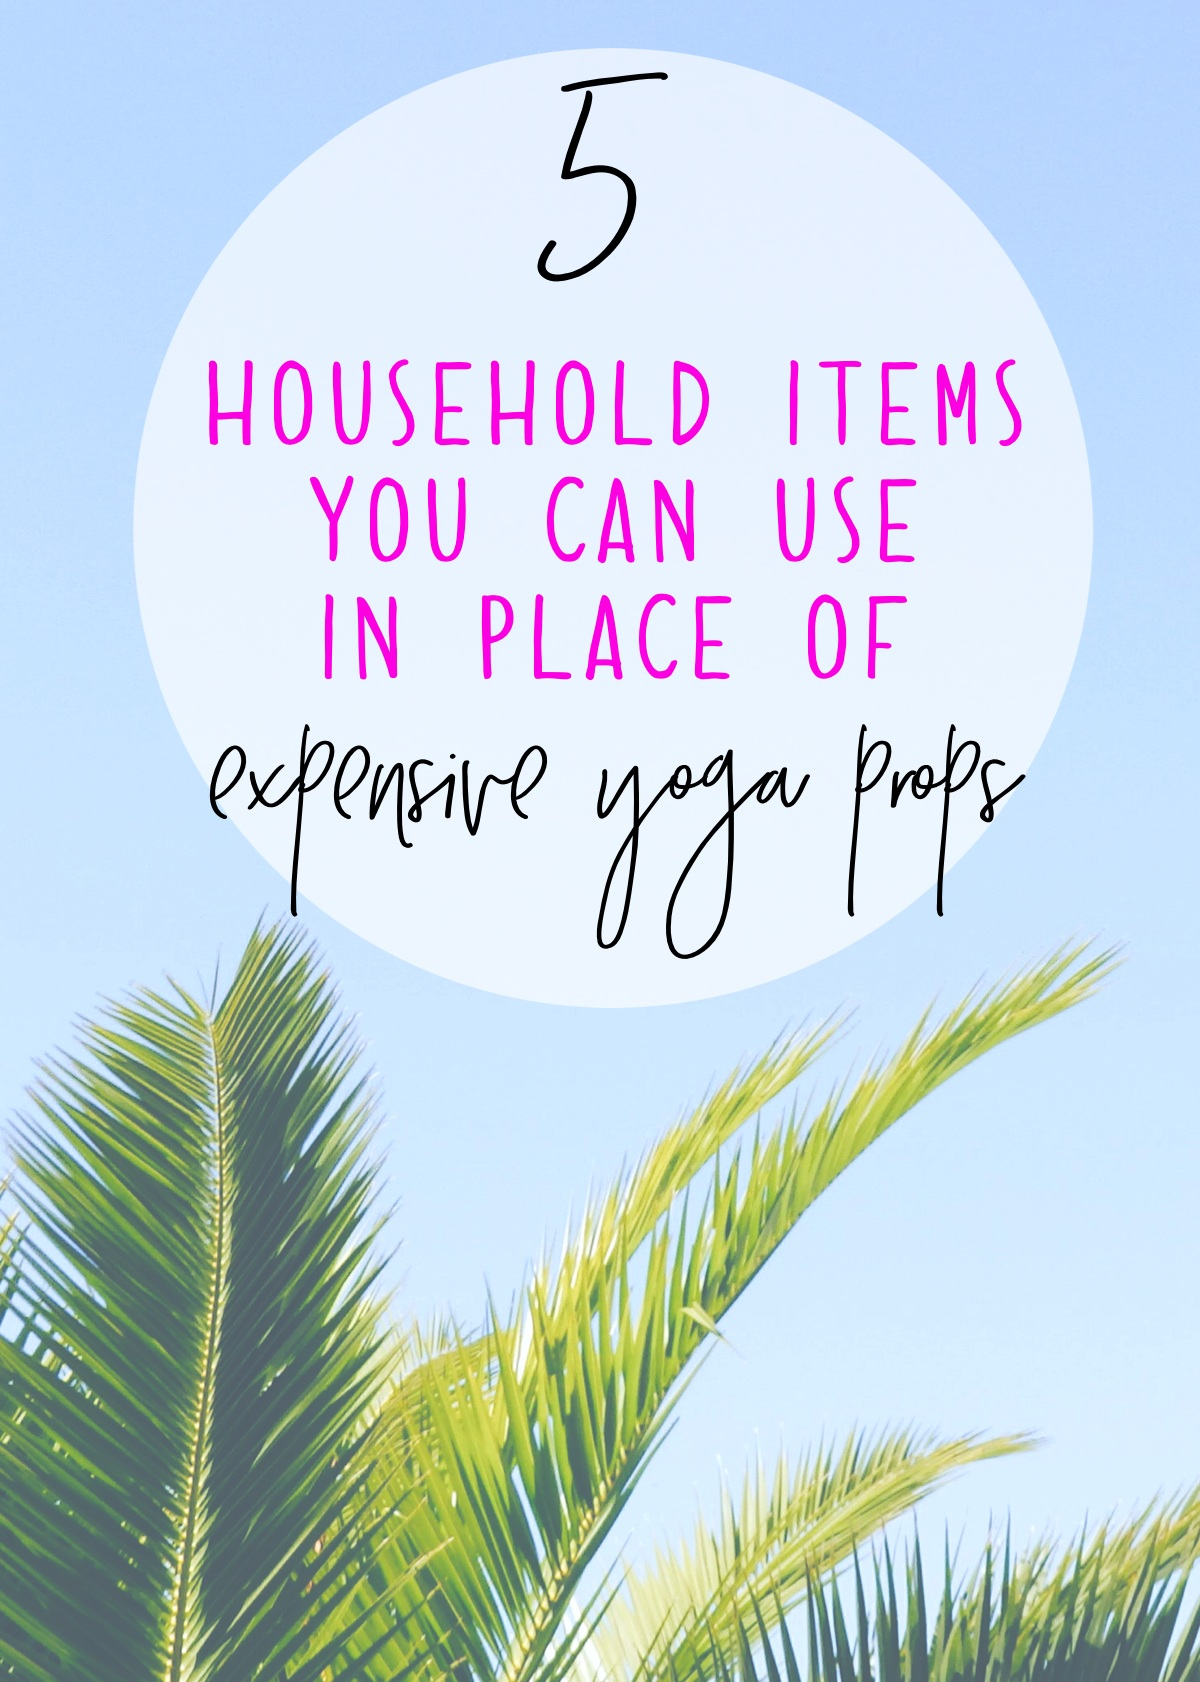 5+Household+Items+You+Can+Use+In+Place+of+Expensive+Yoga+Props+2.jpg